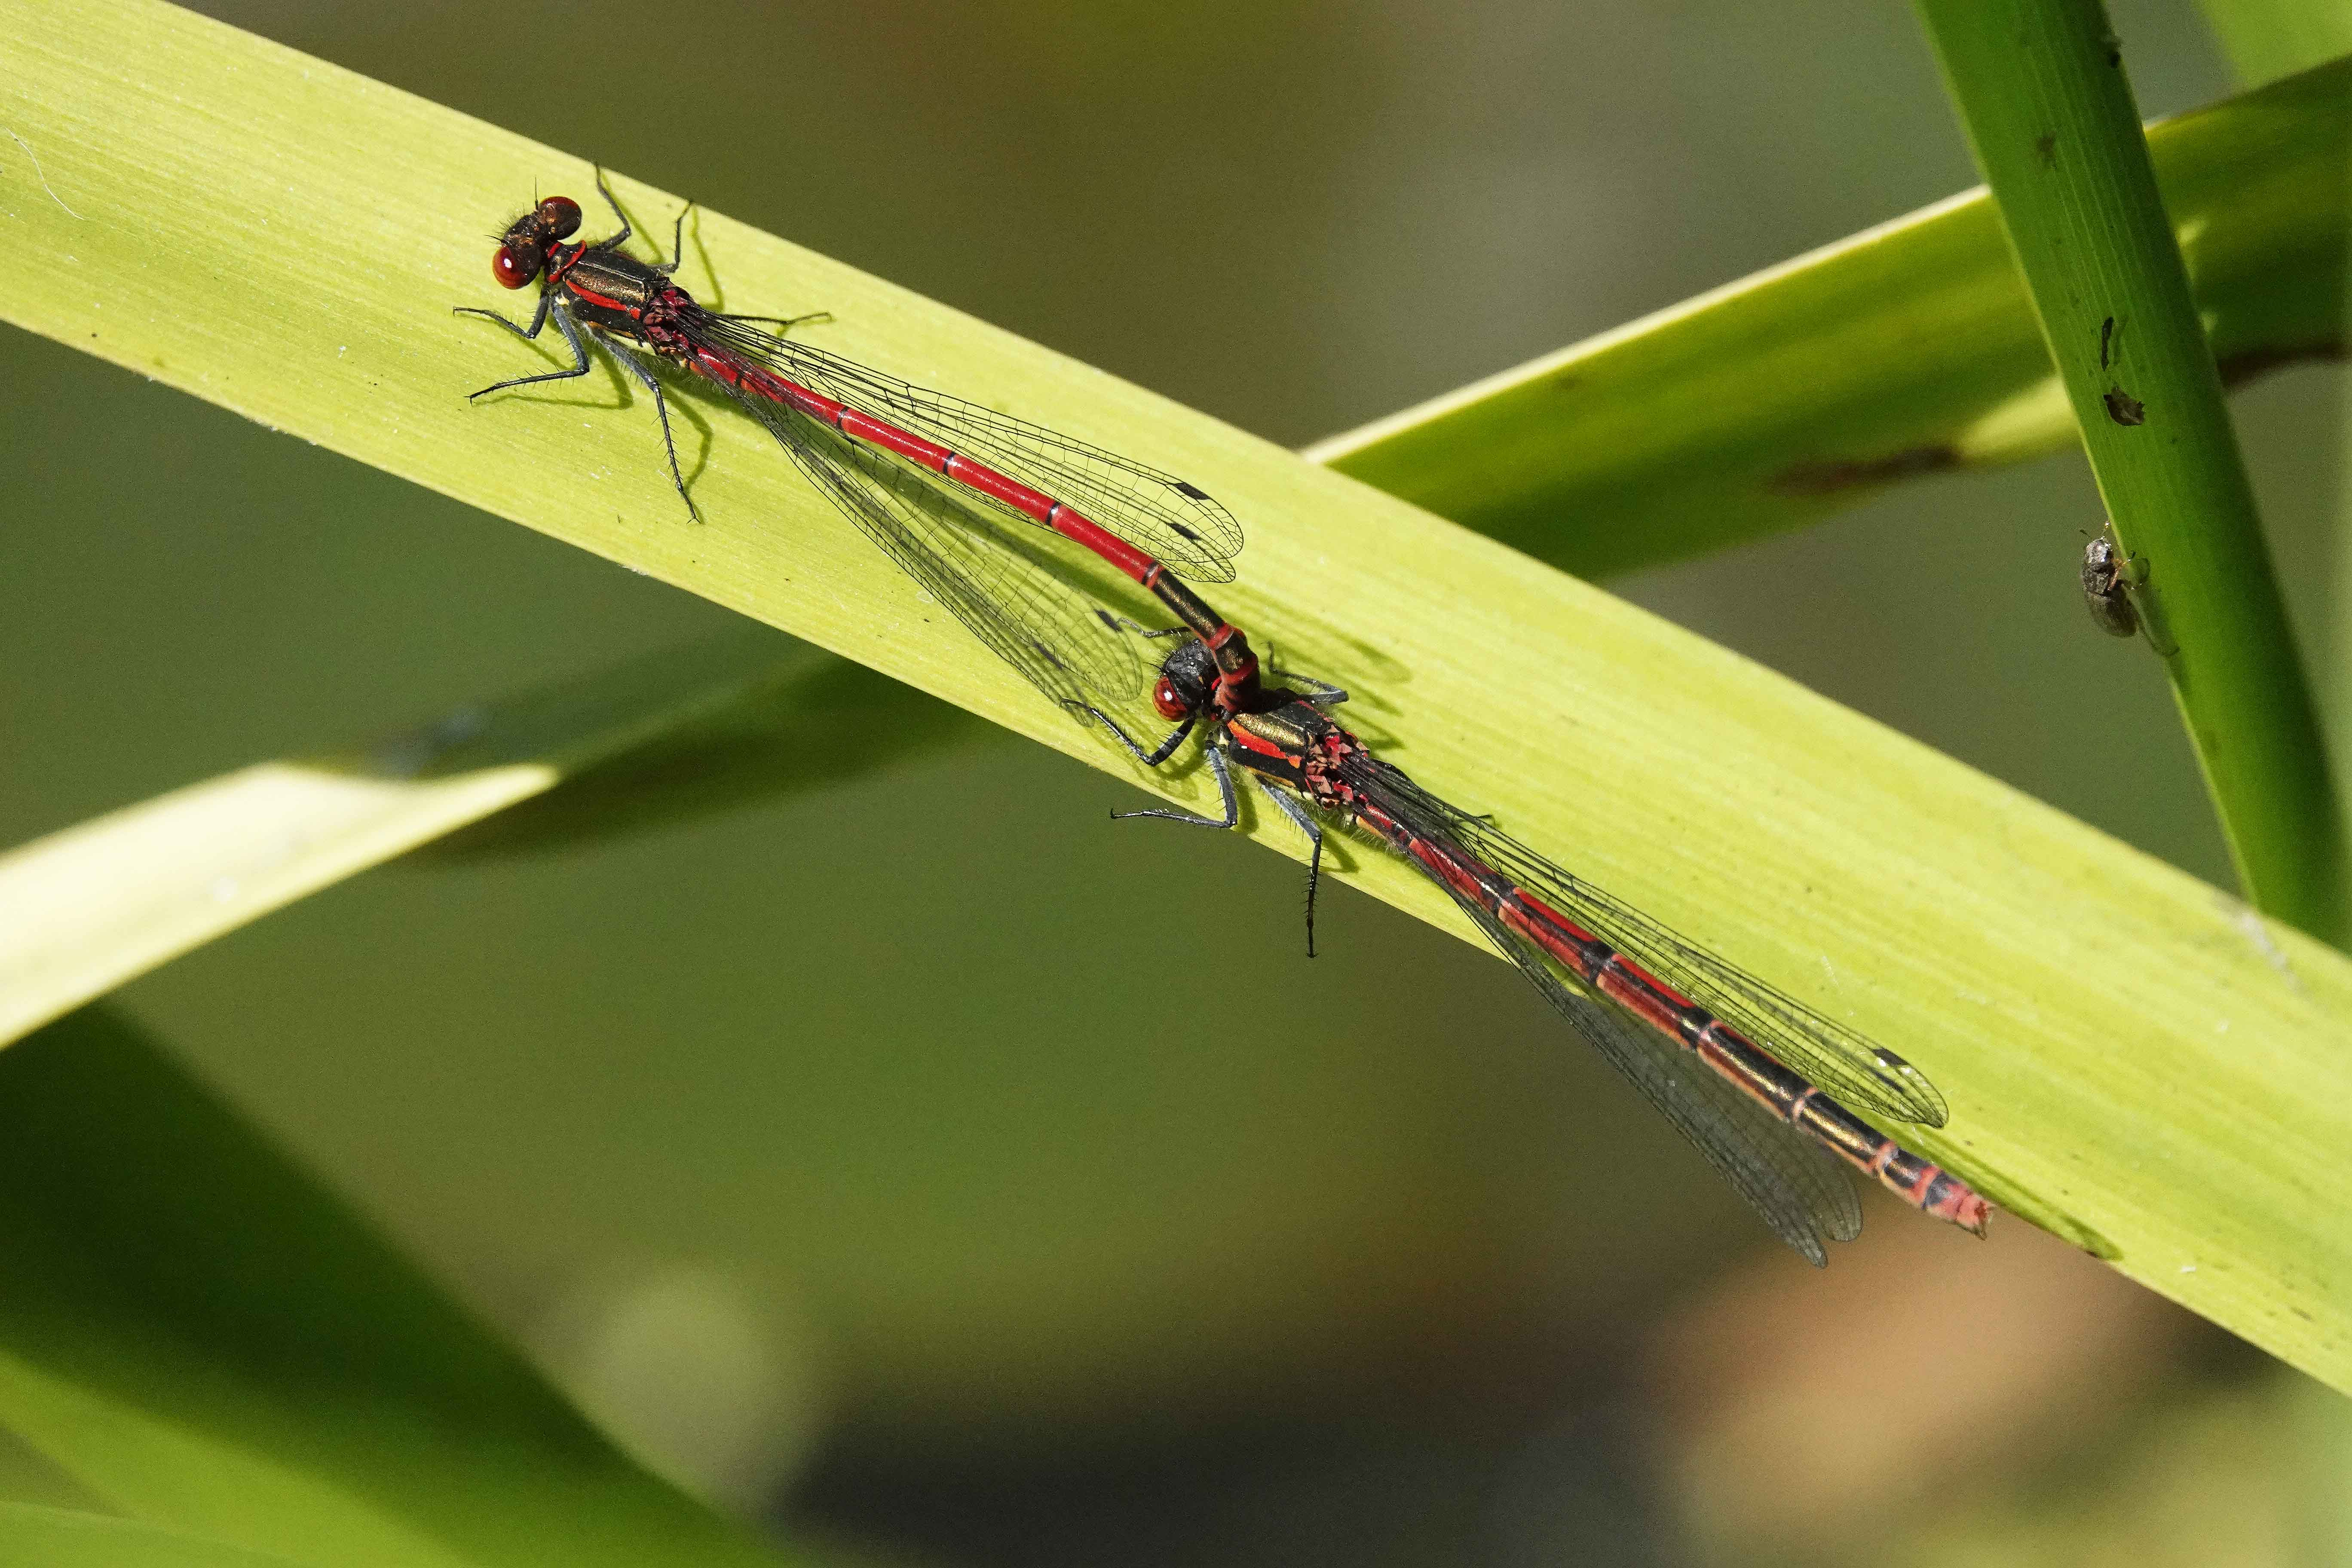 Large-Red-Damselfly-coupling-Shropshire-2020-Keith-Offord-lo-res.jpg